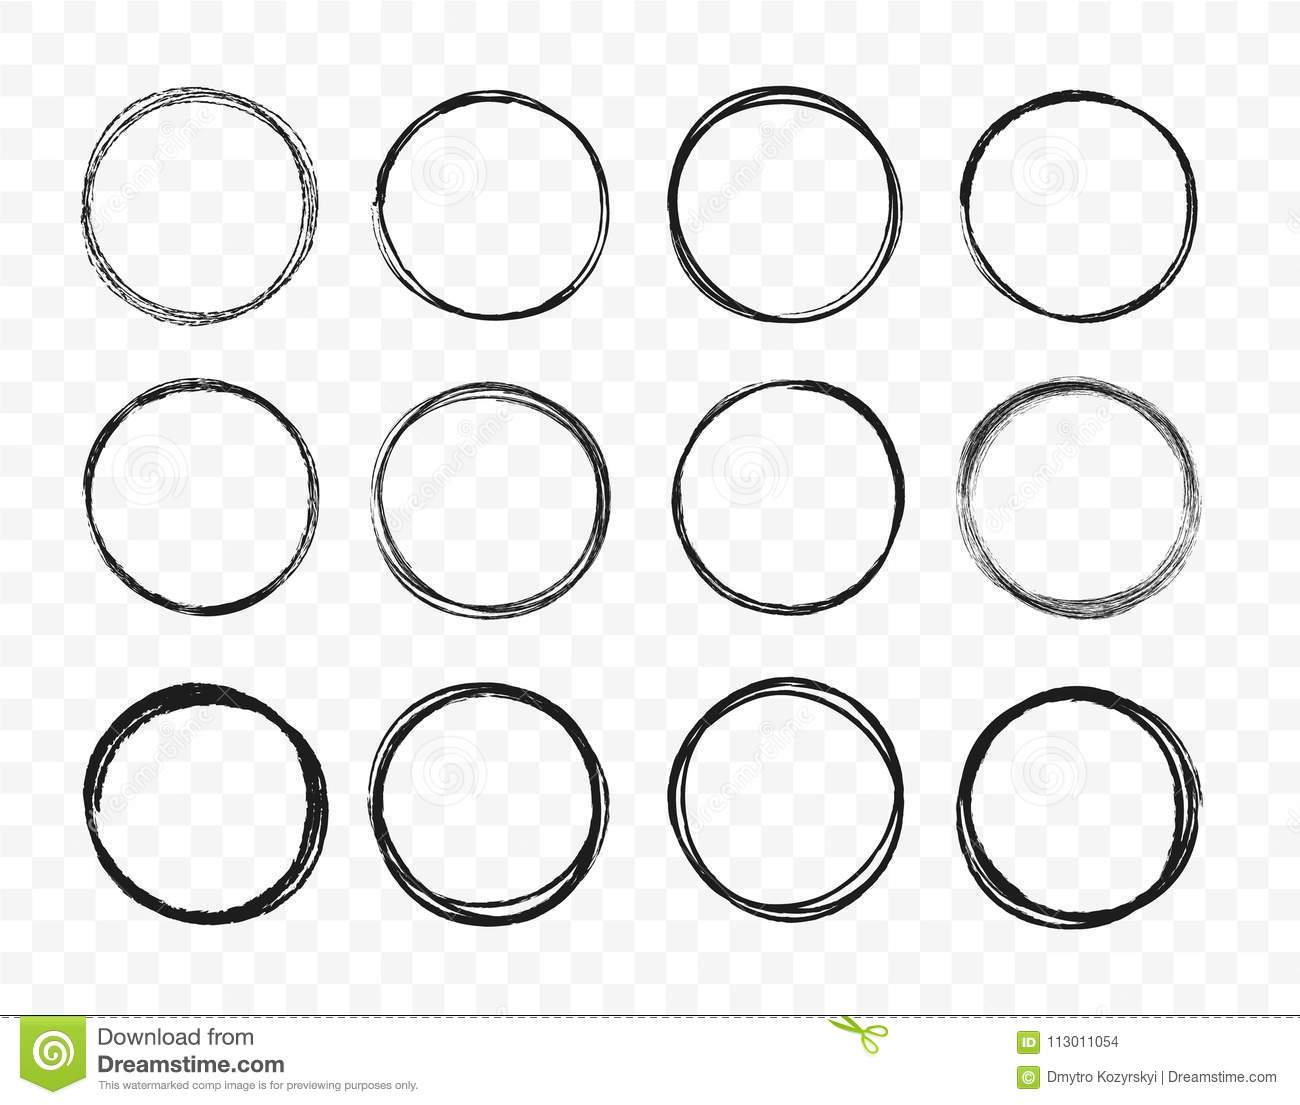 Set hand drawn circle line sketch set. Circular scribble doodle round circles for message note mark design element